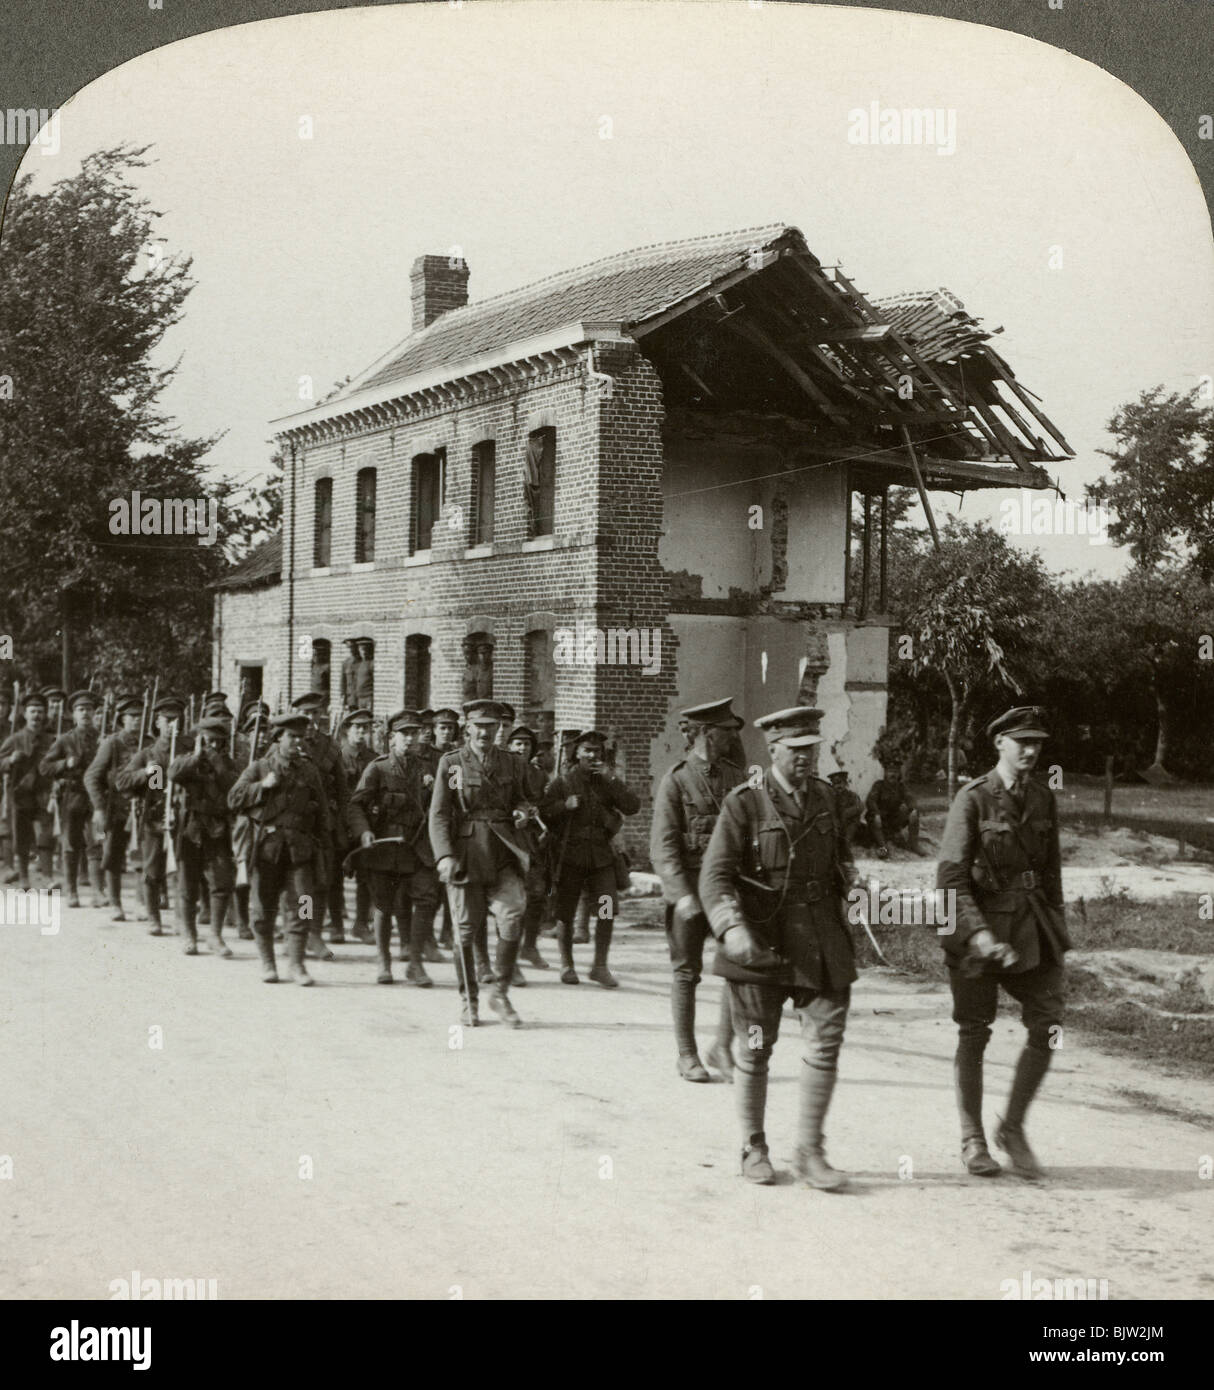 London Territorials on the march, La Bassee Road, northern France, World War I, 1914-1918. - Stock Image